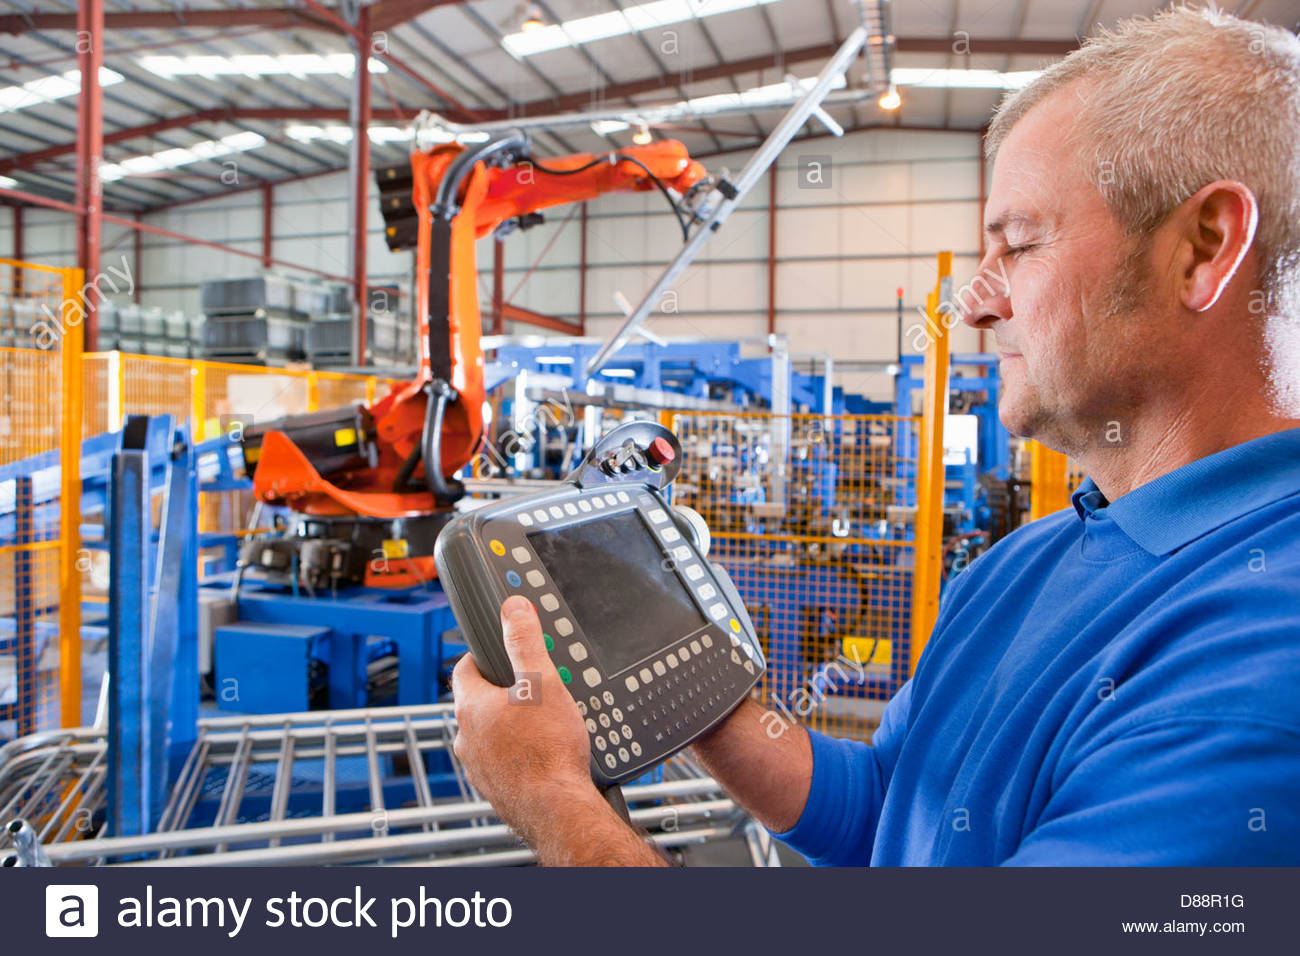 Close up of worker controlling robotic machinery lifting steel fencing on production line in manufacturing plant - Stock Image